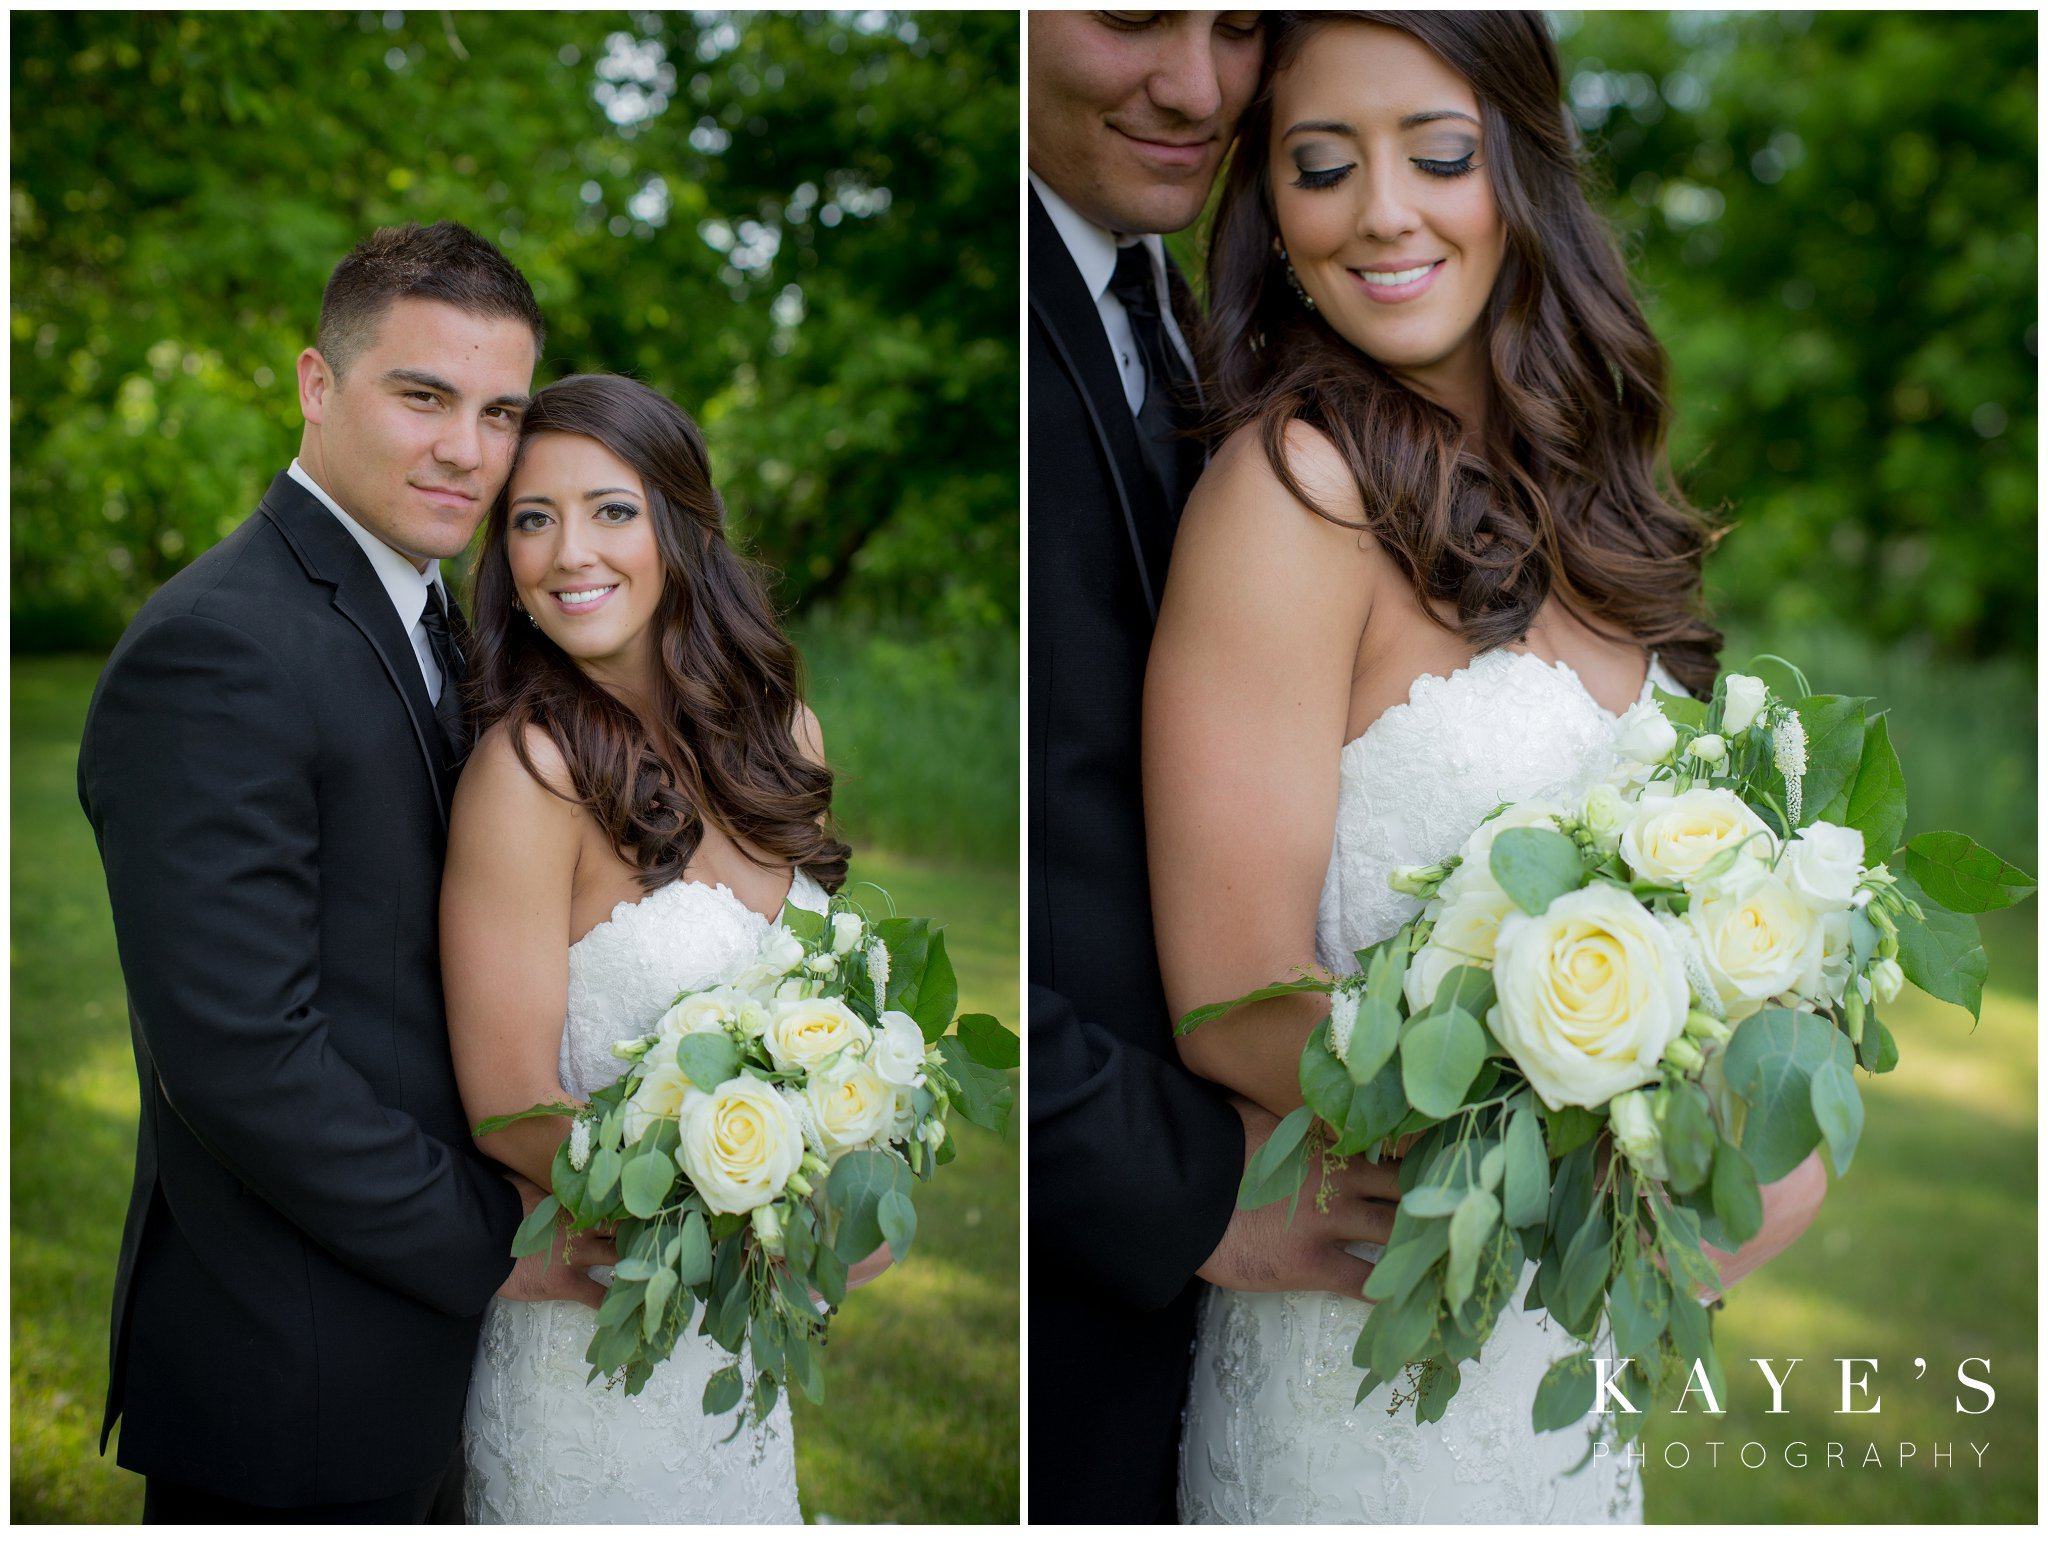 gorgeous bouquet with bride holding it in arm while groom hugs her in pontiac michigan during wedding photos